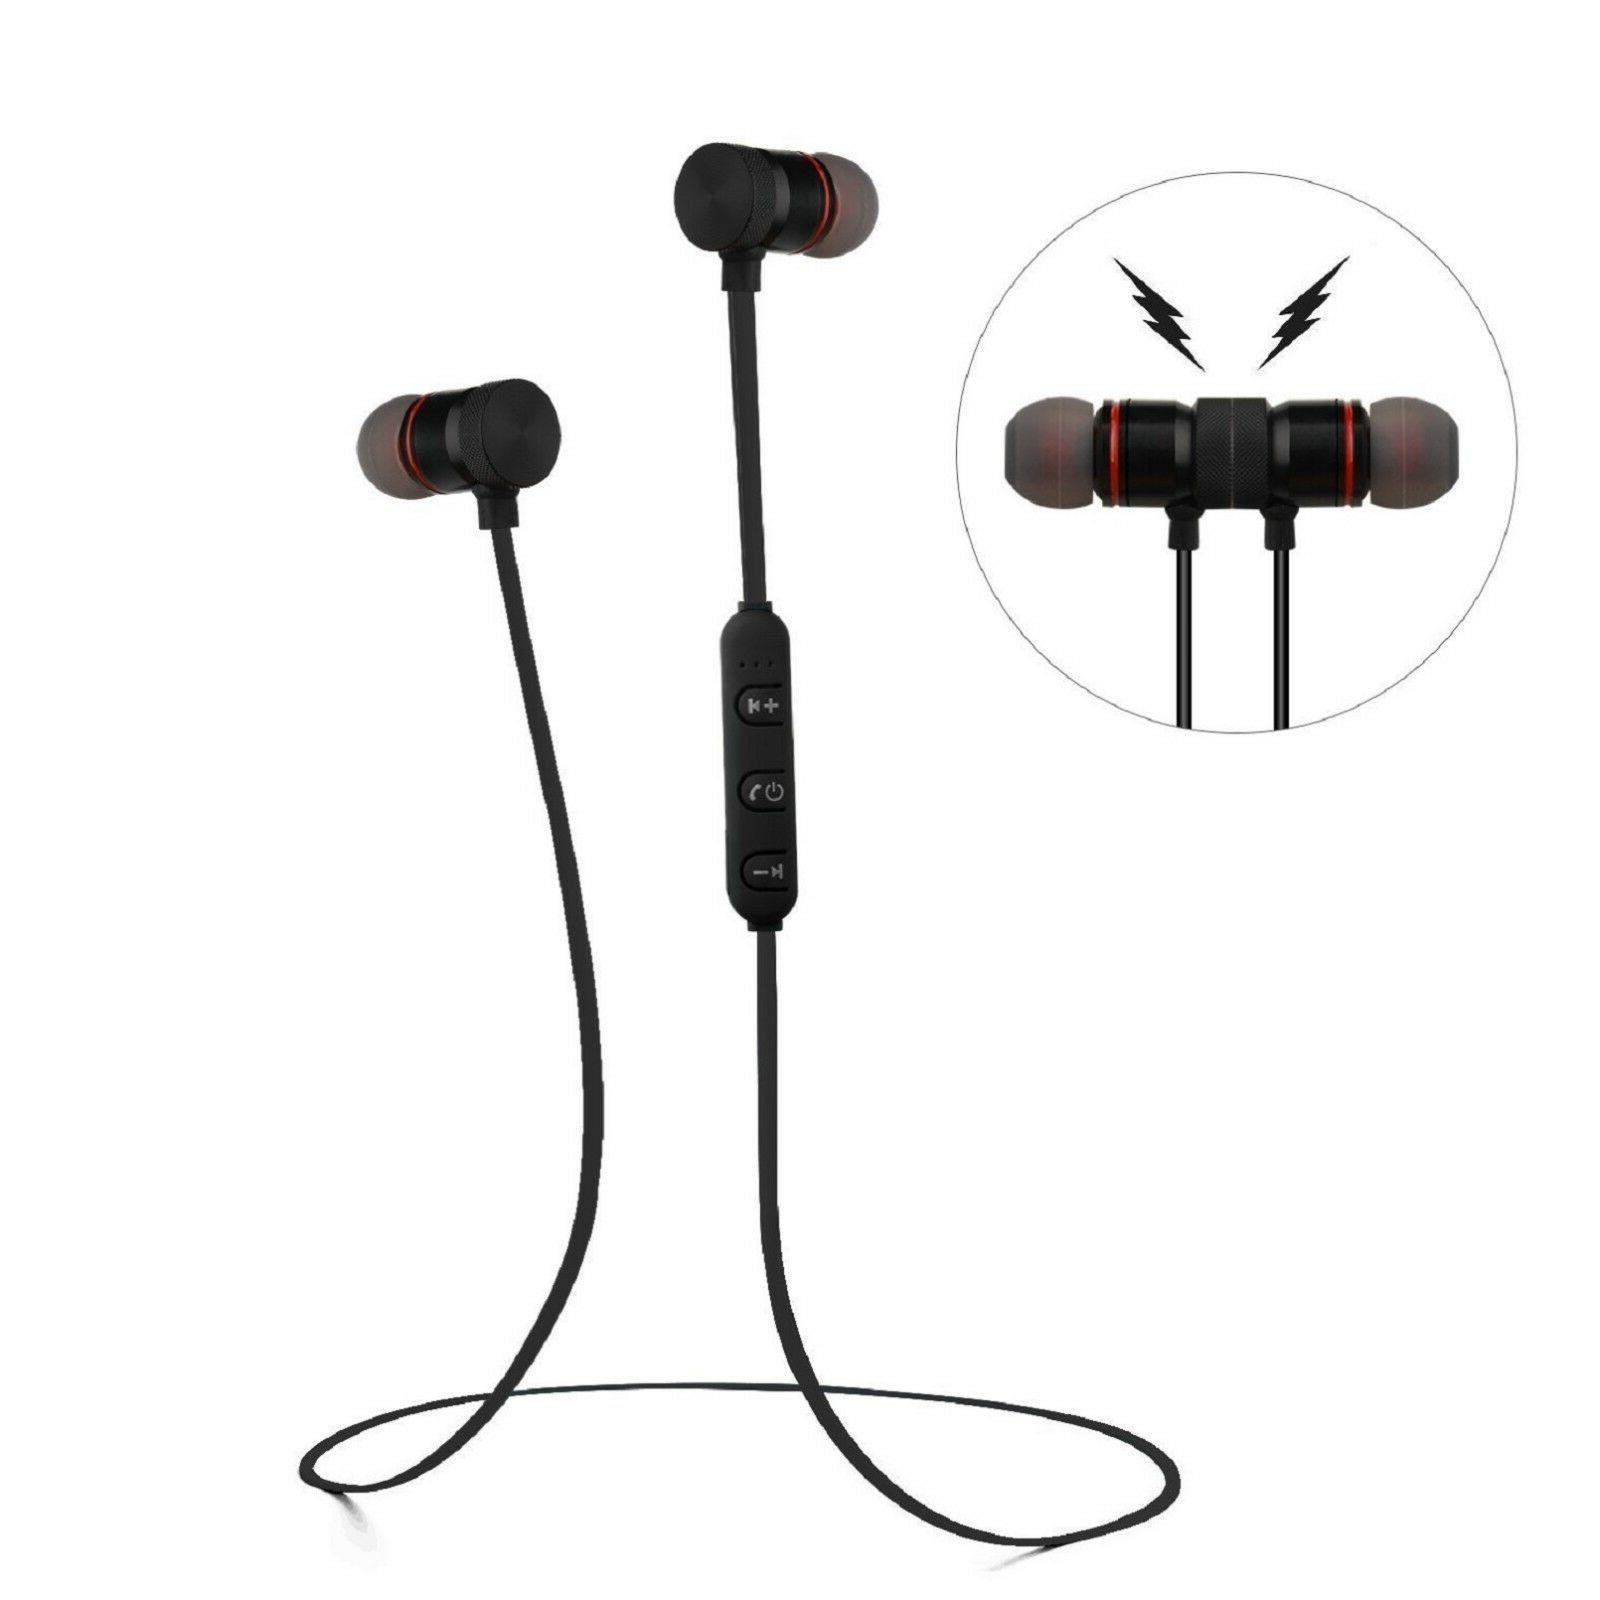 Sweatproof Wireless Headphones in Headsets